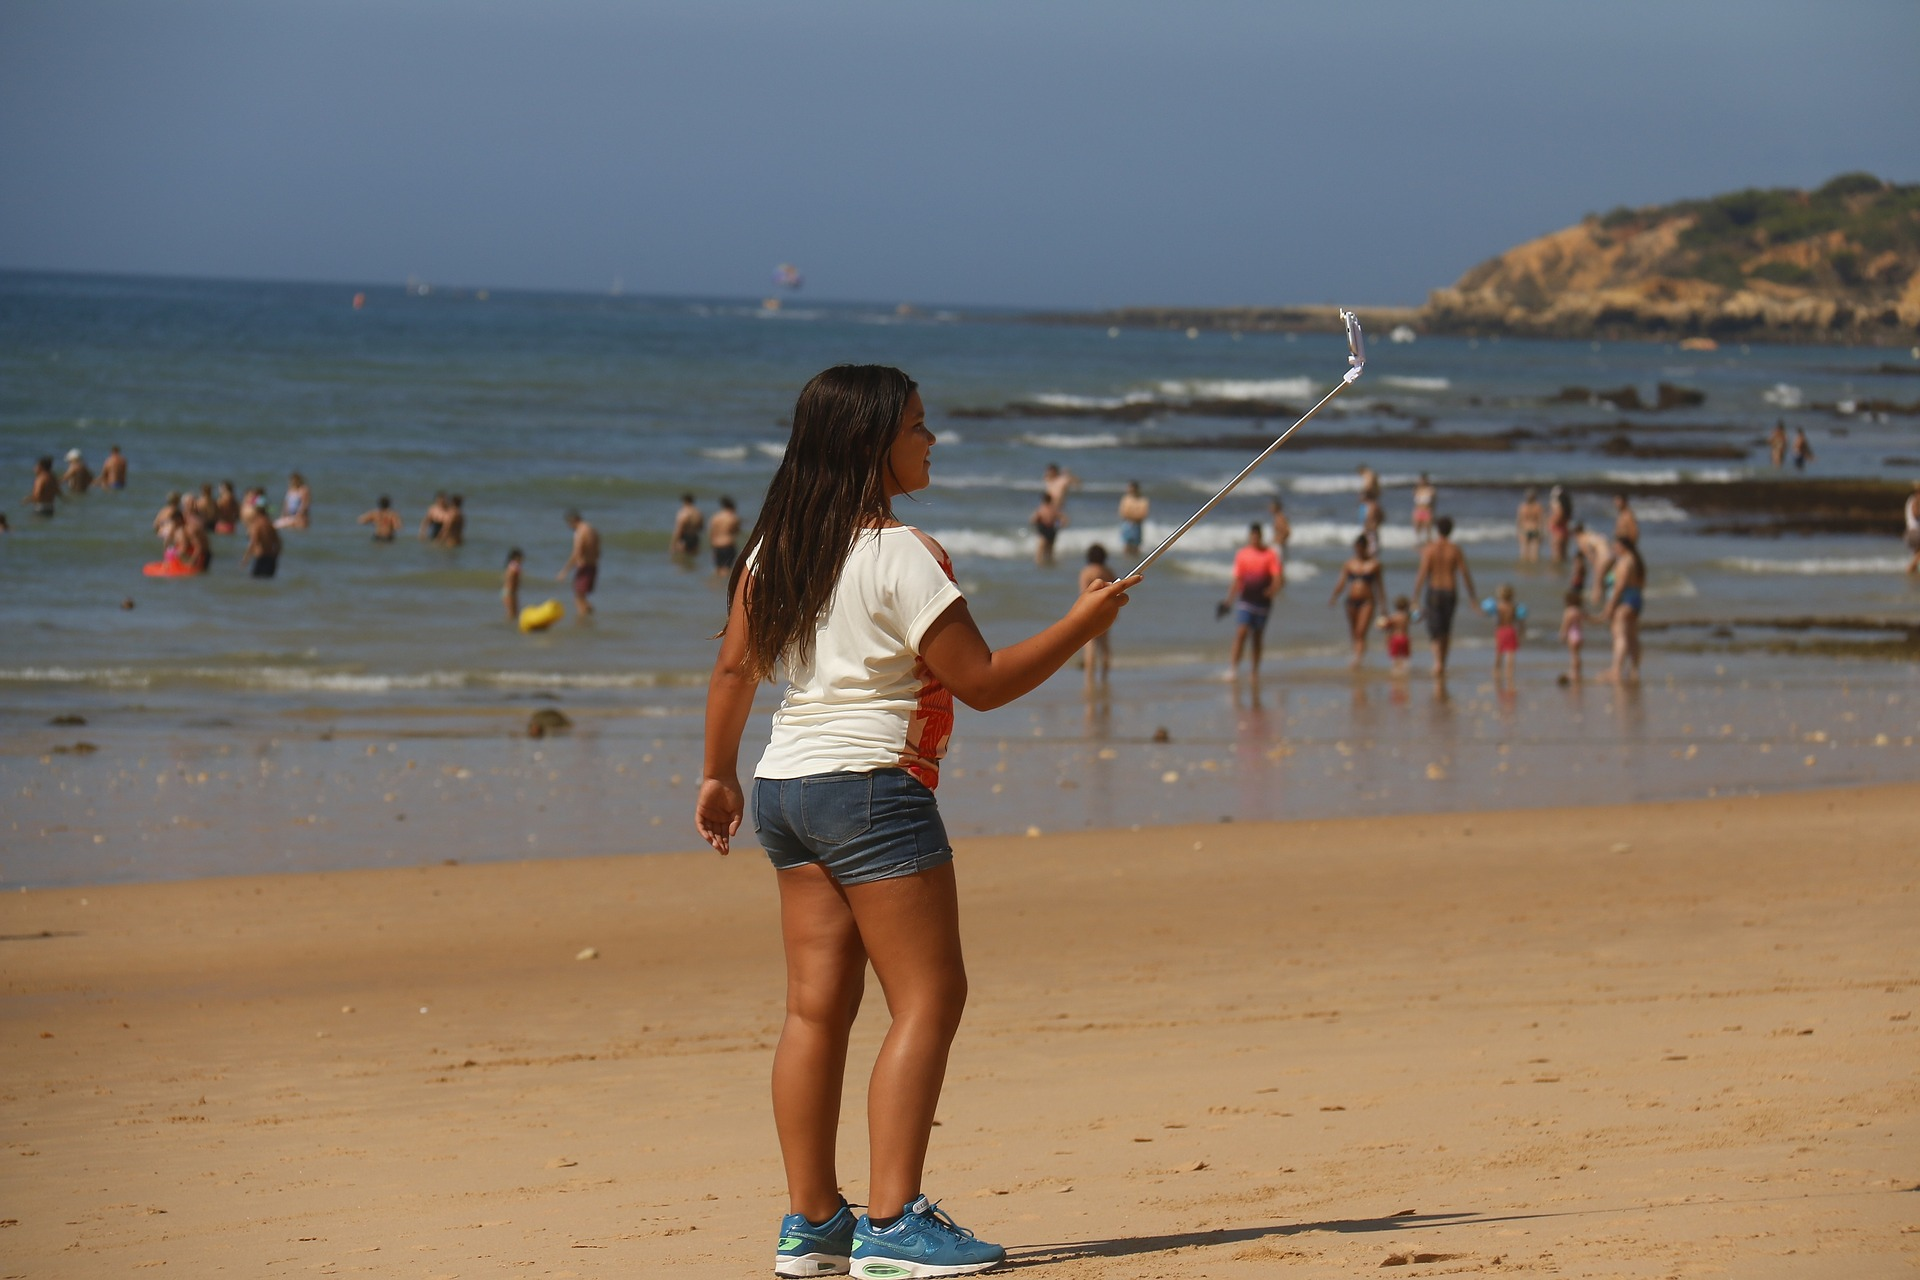 Woman on the beach taking photo with selfie stick